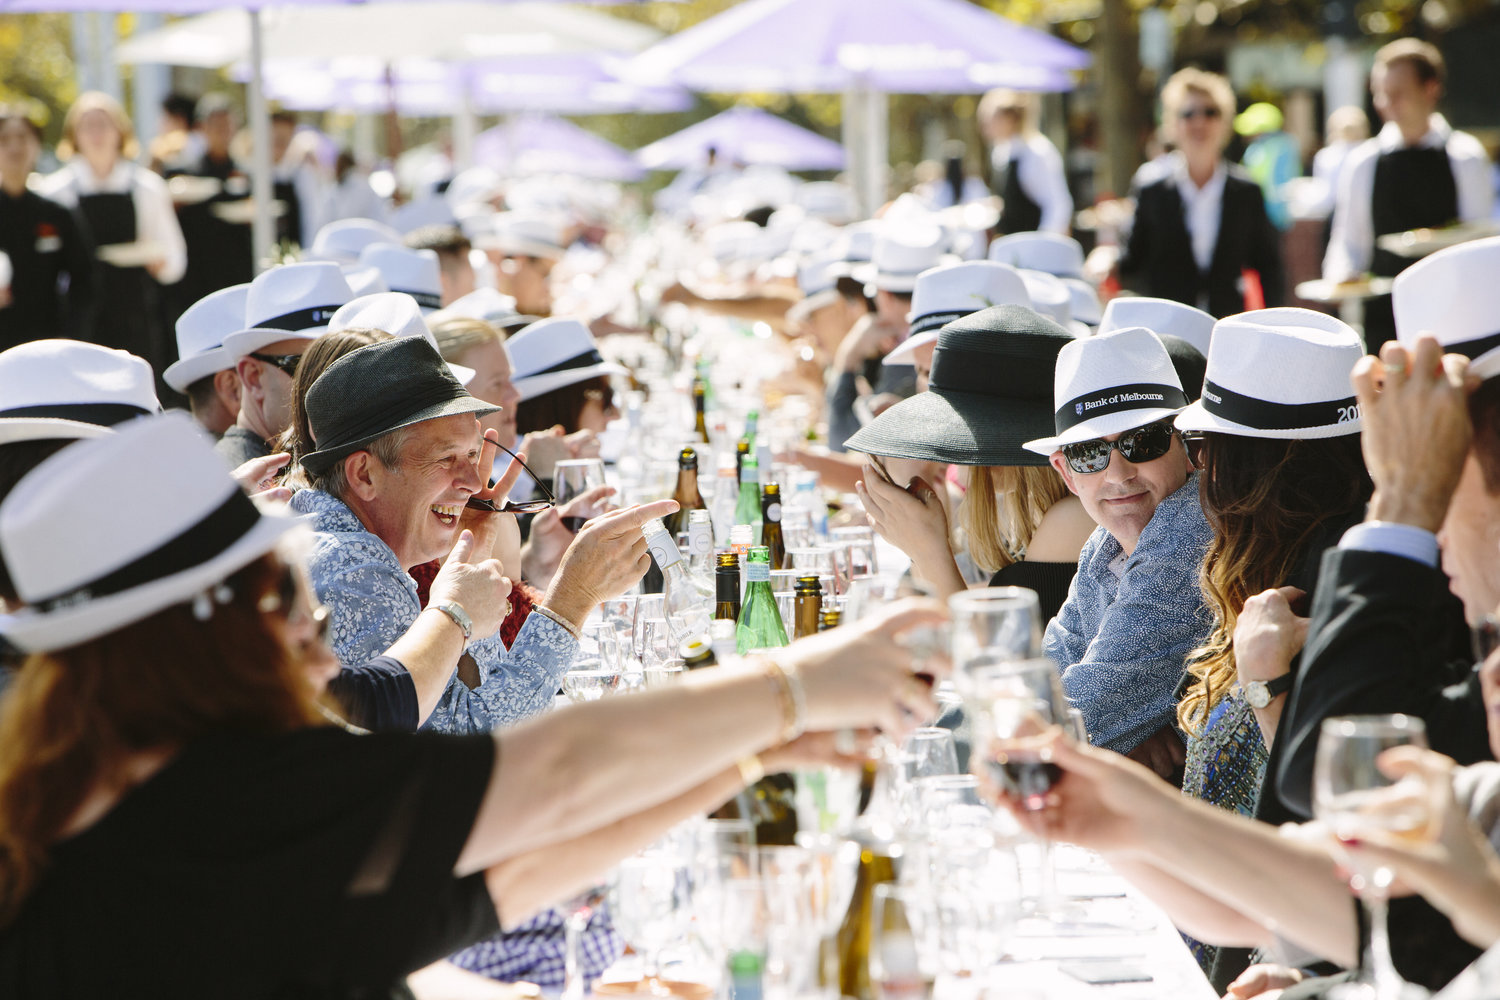 BANK OF MELBOURNE - Melbourne Food and Wine Festival